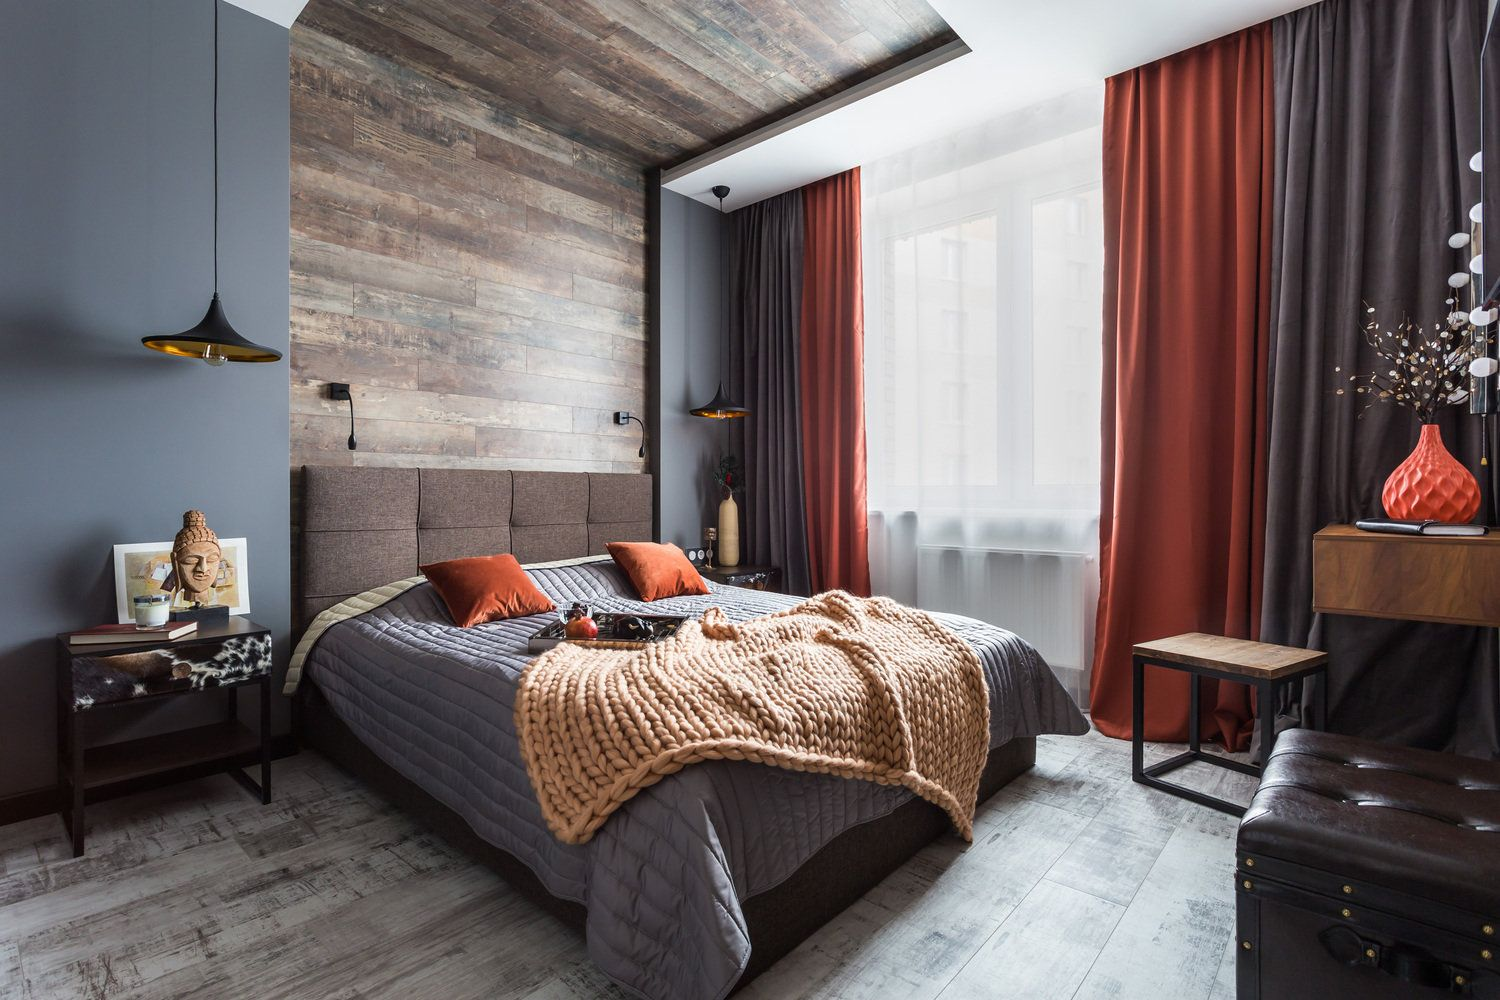 Headboard and ceiling in wooden finishing for modern bedroom